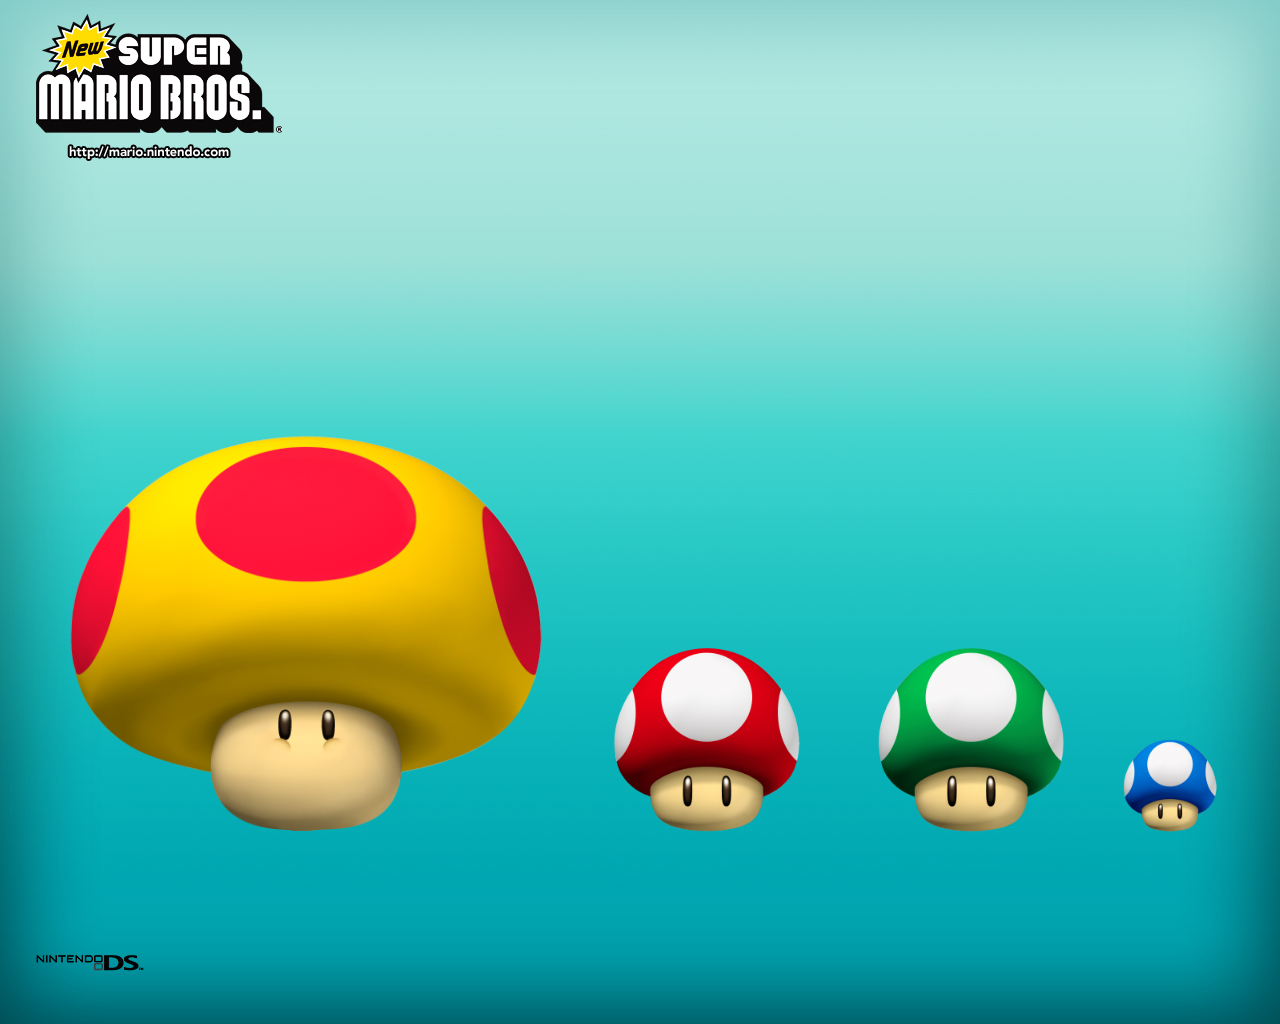 Super Mario Bros. mushrooms small to big